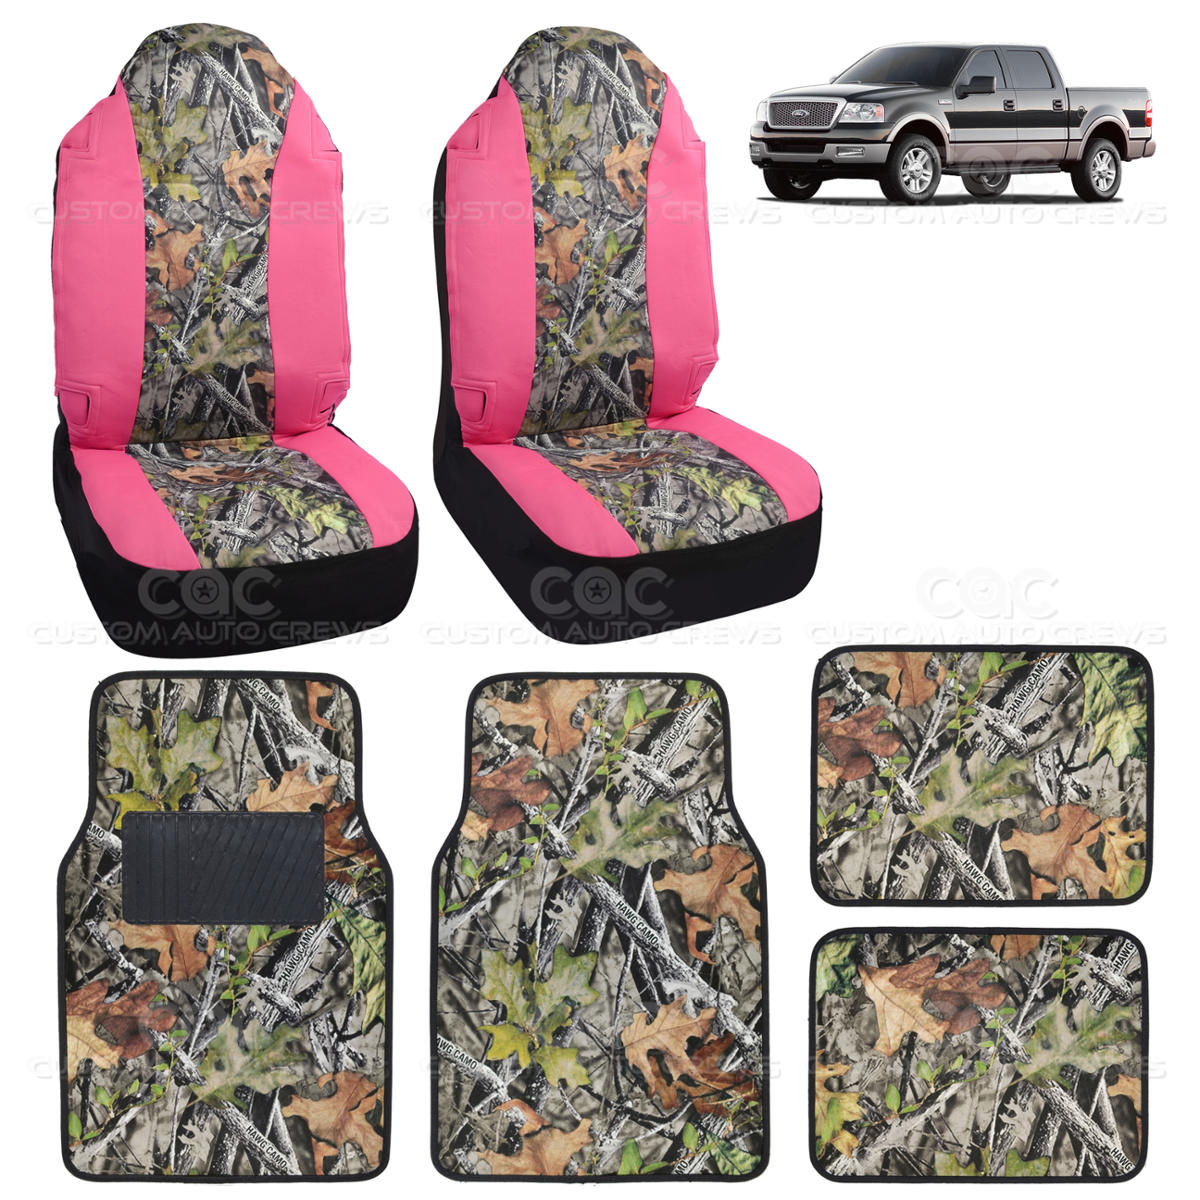 Camo seat cover floor mat for ford f 150 1500 6 piece camouflage pink